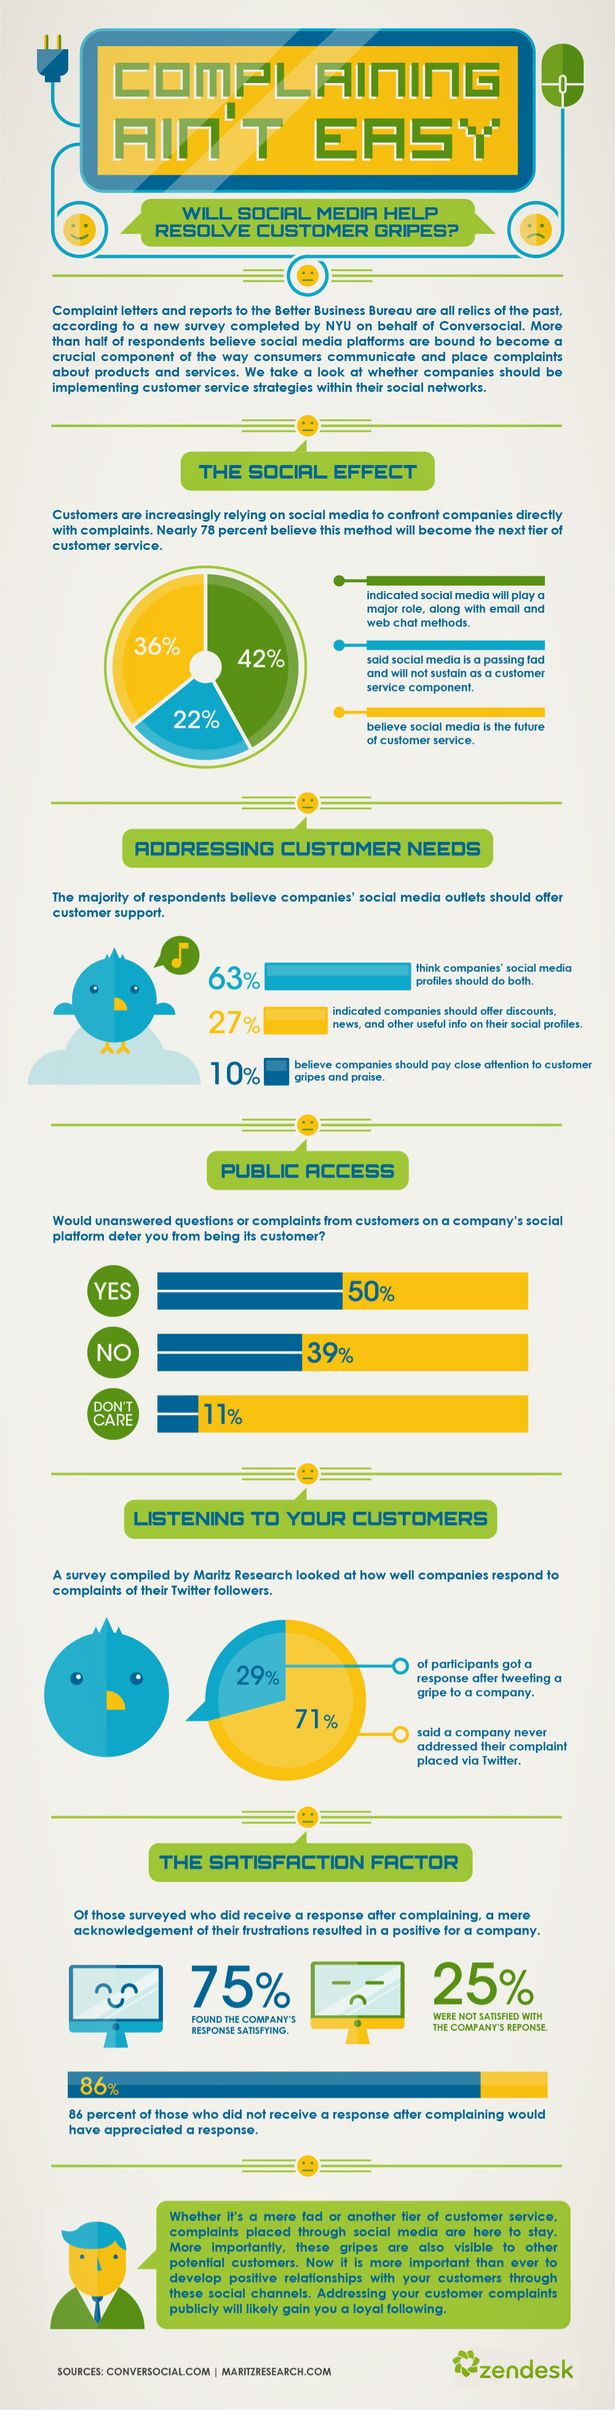 78% of customers believe that social media will be the next big medium for customer service